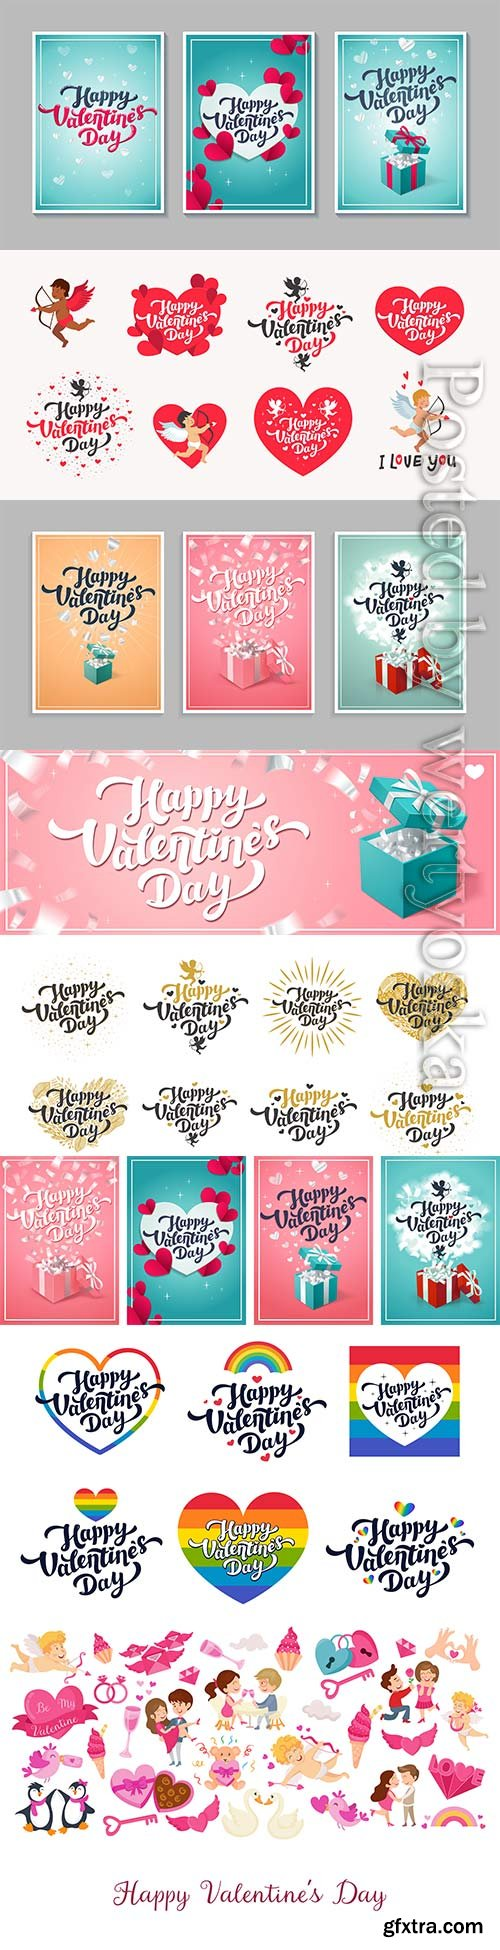 Valentine's day greeting cards, love day cards or stickers